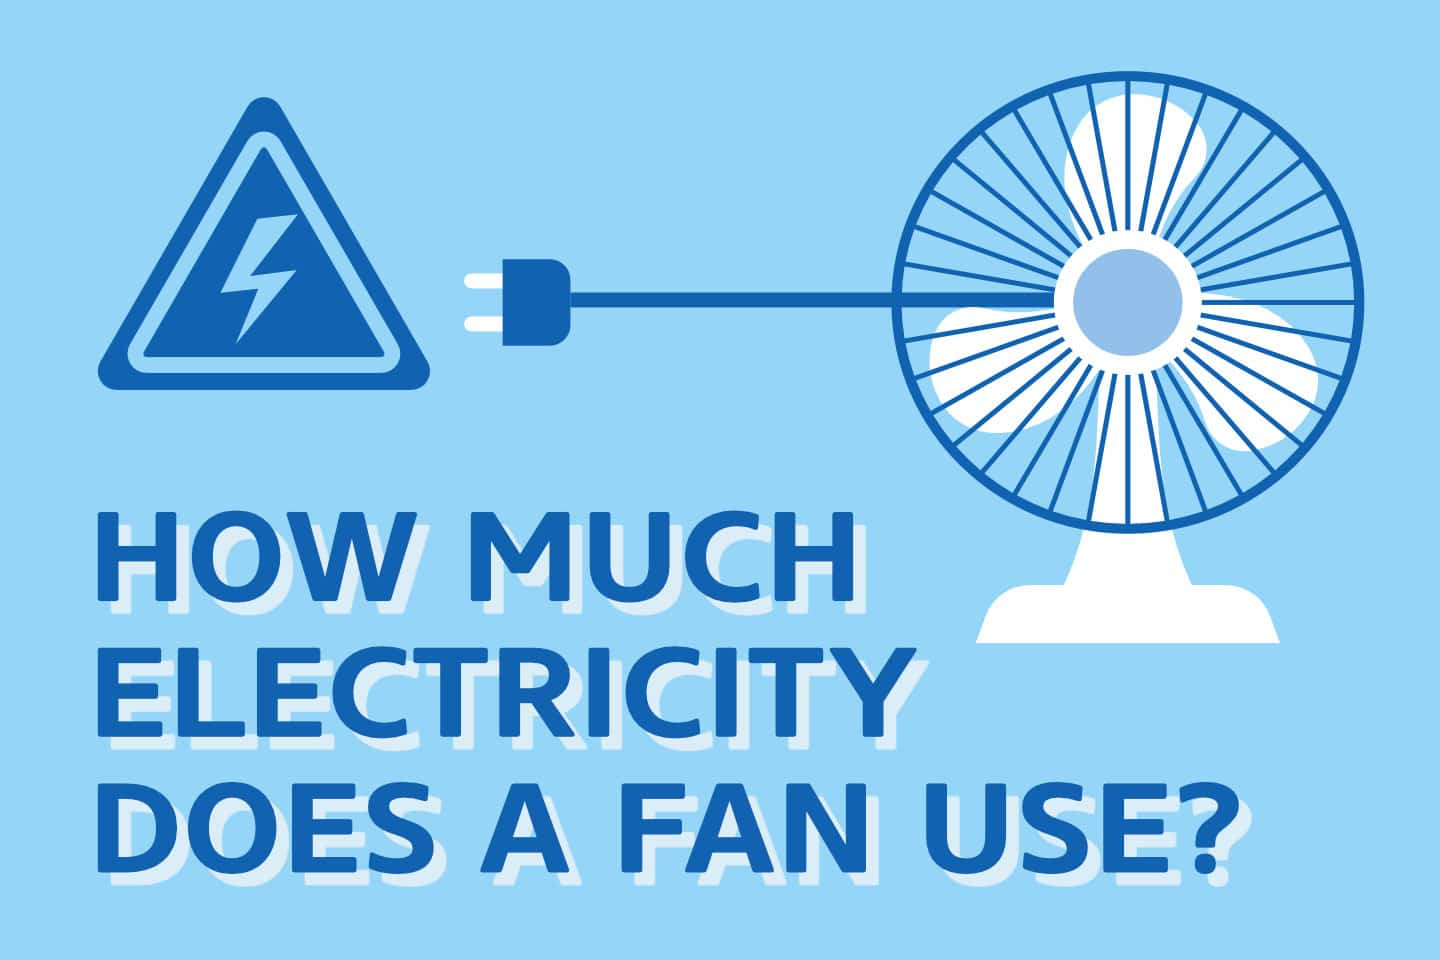 ❄️ How Much Electricity Do Fans Use? [CALCULATED]